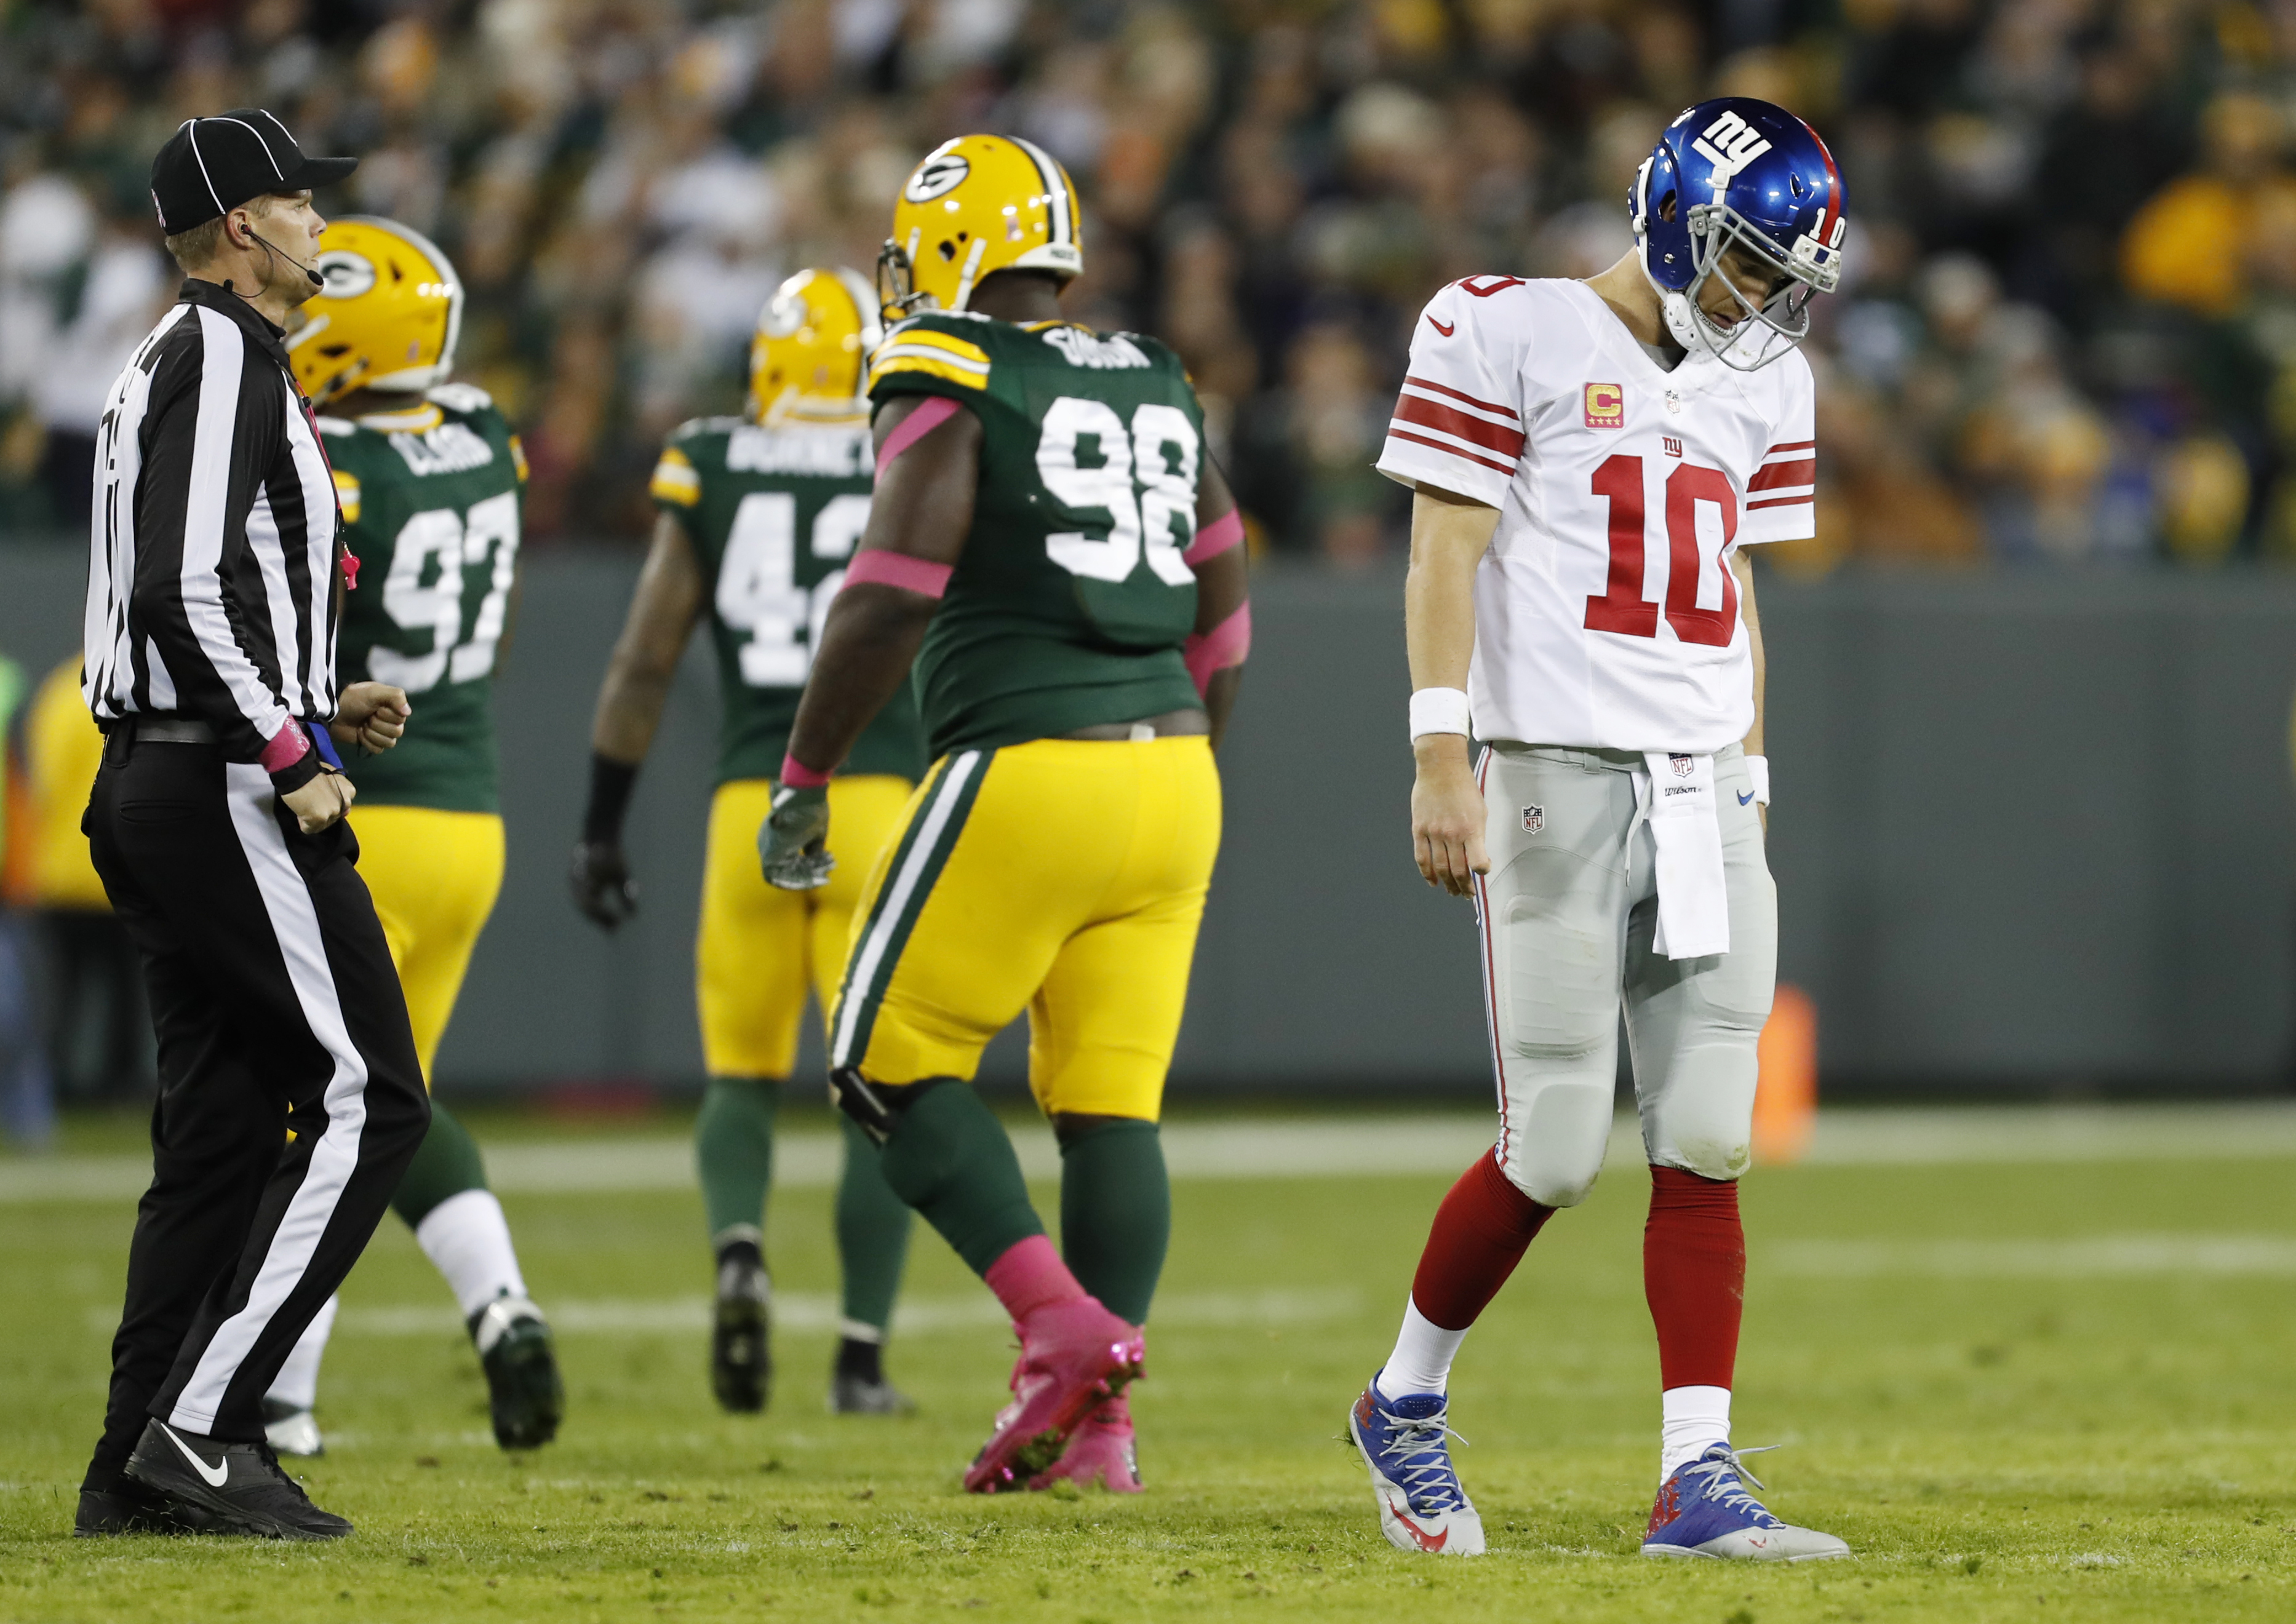 New York Giants' Eli Manning walks off the field after an incomplete pass during the second half of an NFL football game against the Green Bay Packers Sunday, Oct. 9, 2016, in Green Bay, Wis. (AP Photo/Matt Ludtke)